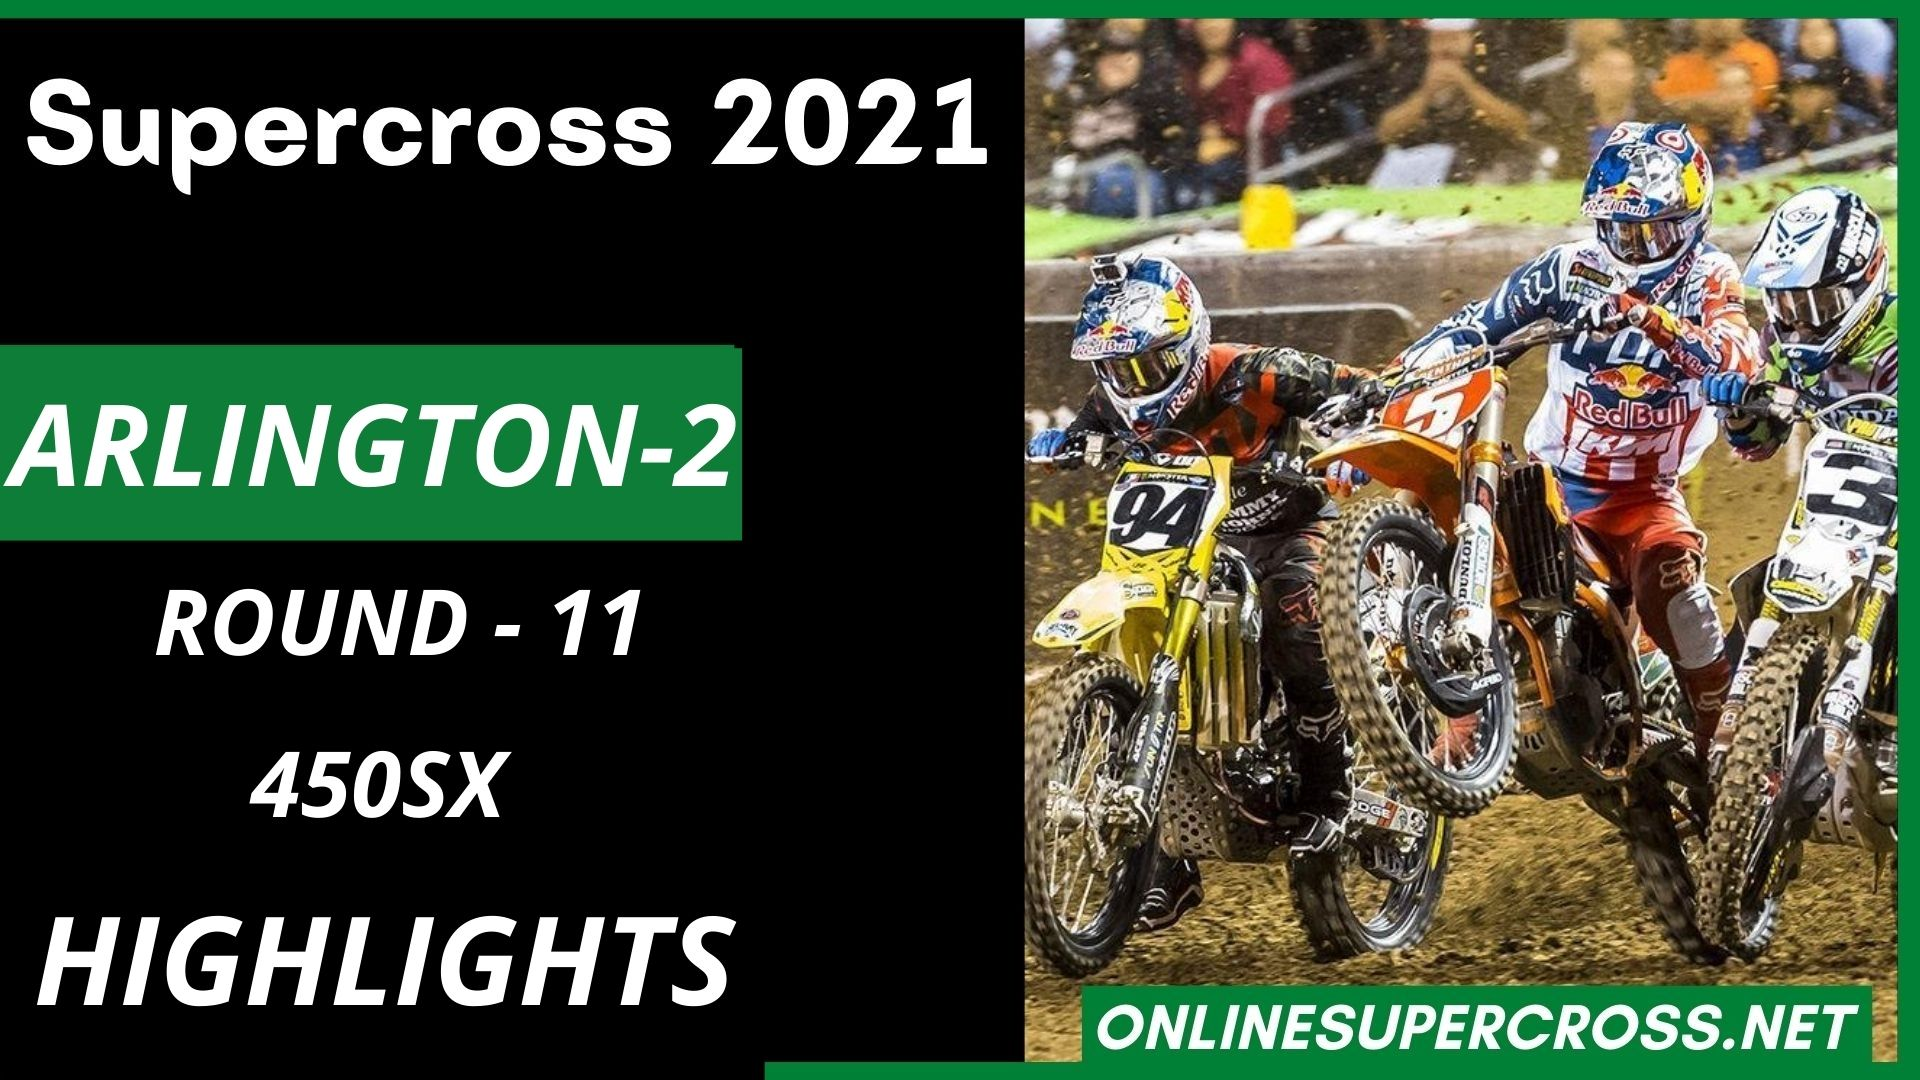 Arlington 2 Round 11 Supercross 450SX Highlights 2021